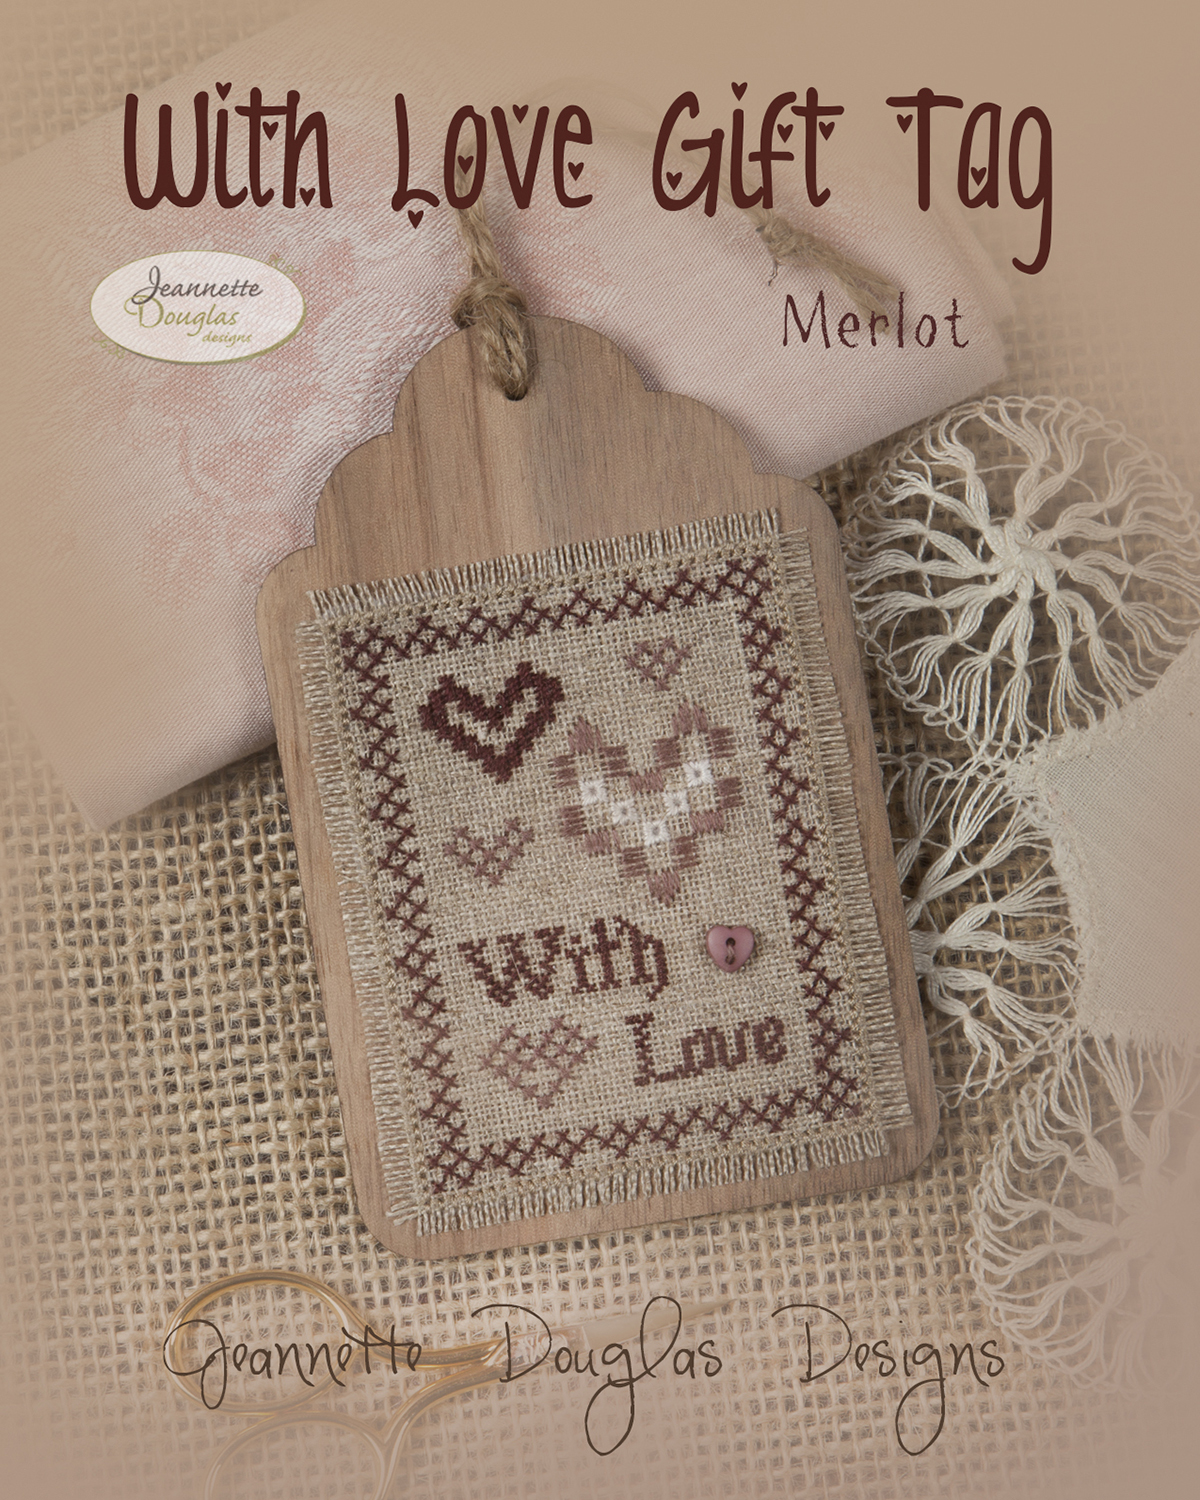 With Love Gift Tag merlot